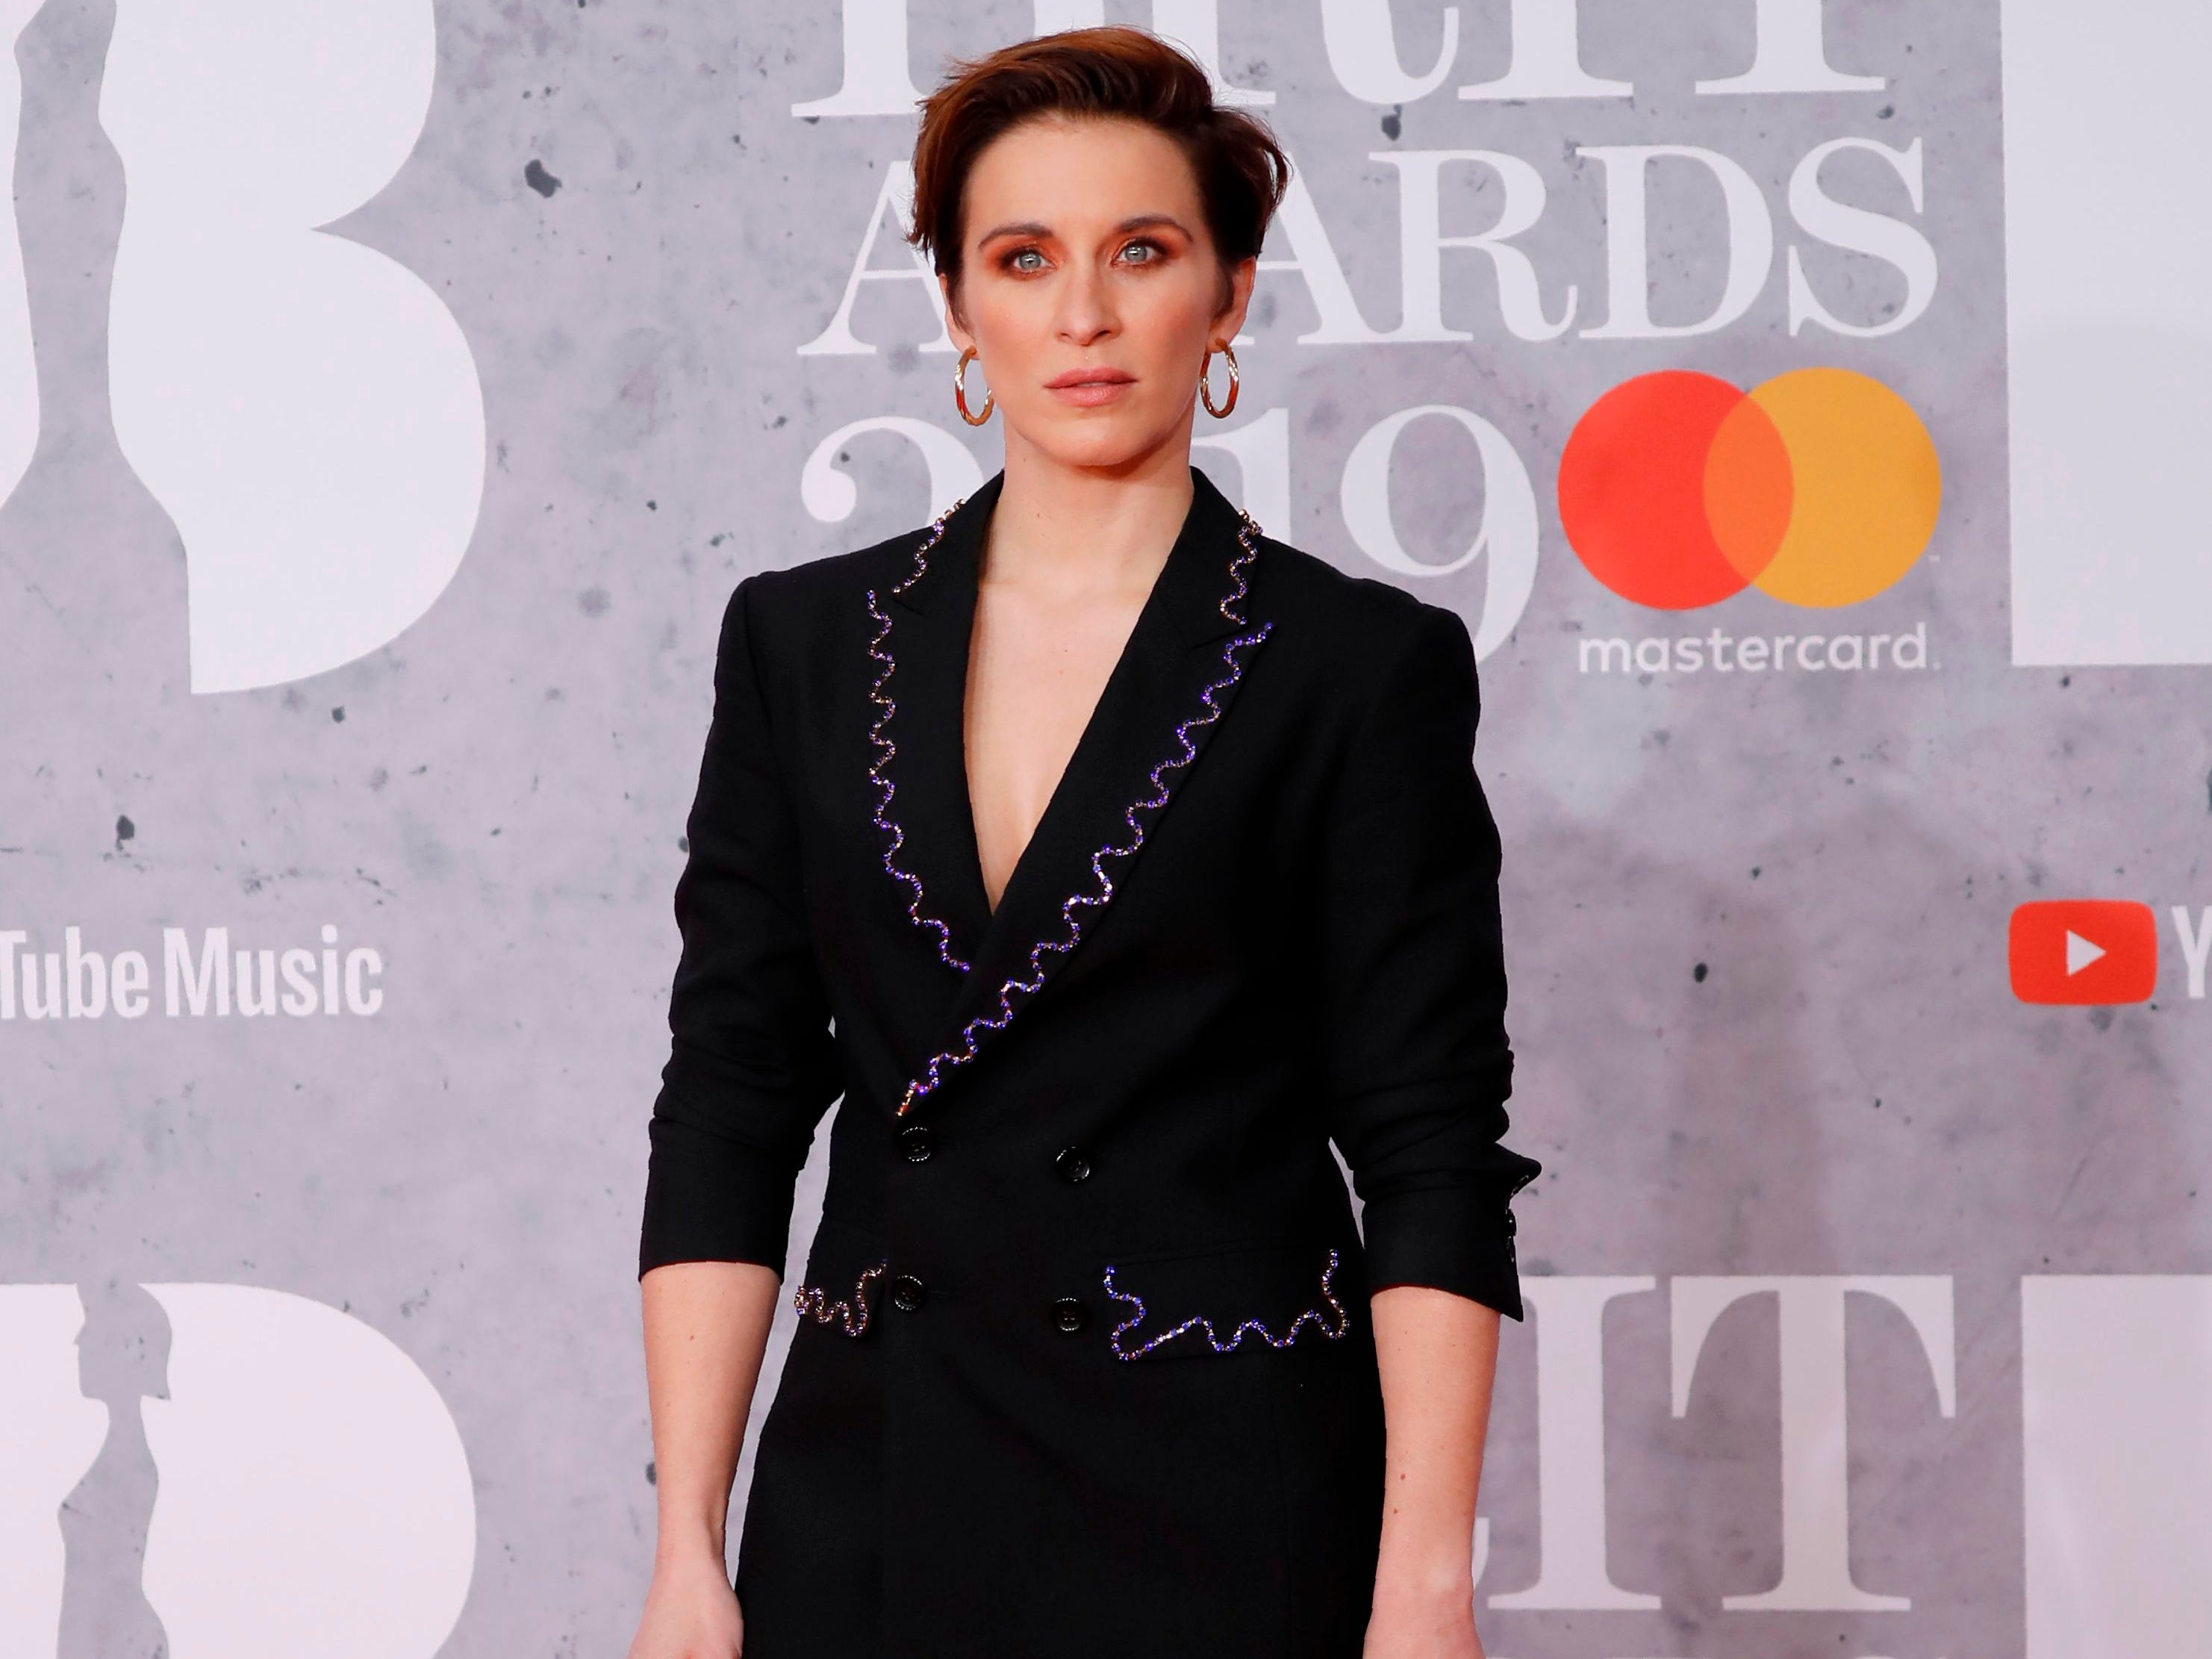 British actor Vicky McClure poses on the red carpet on arrival for the BRIT Awards 2019 in London on February 20, 2019. (Photo by Tolga AKMEN / AFP) / RESTRICTED TO EDITORIAL USE  NO POSTERS  NO MERCHANDISE NO USE IN PUBLICATIONS DEVOTED TO ARTISTSTOLGA AKMEN/AFP/Getty Images ORIG FILE ID: AFP_1DO1DV